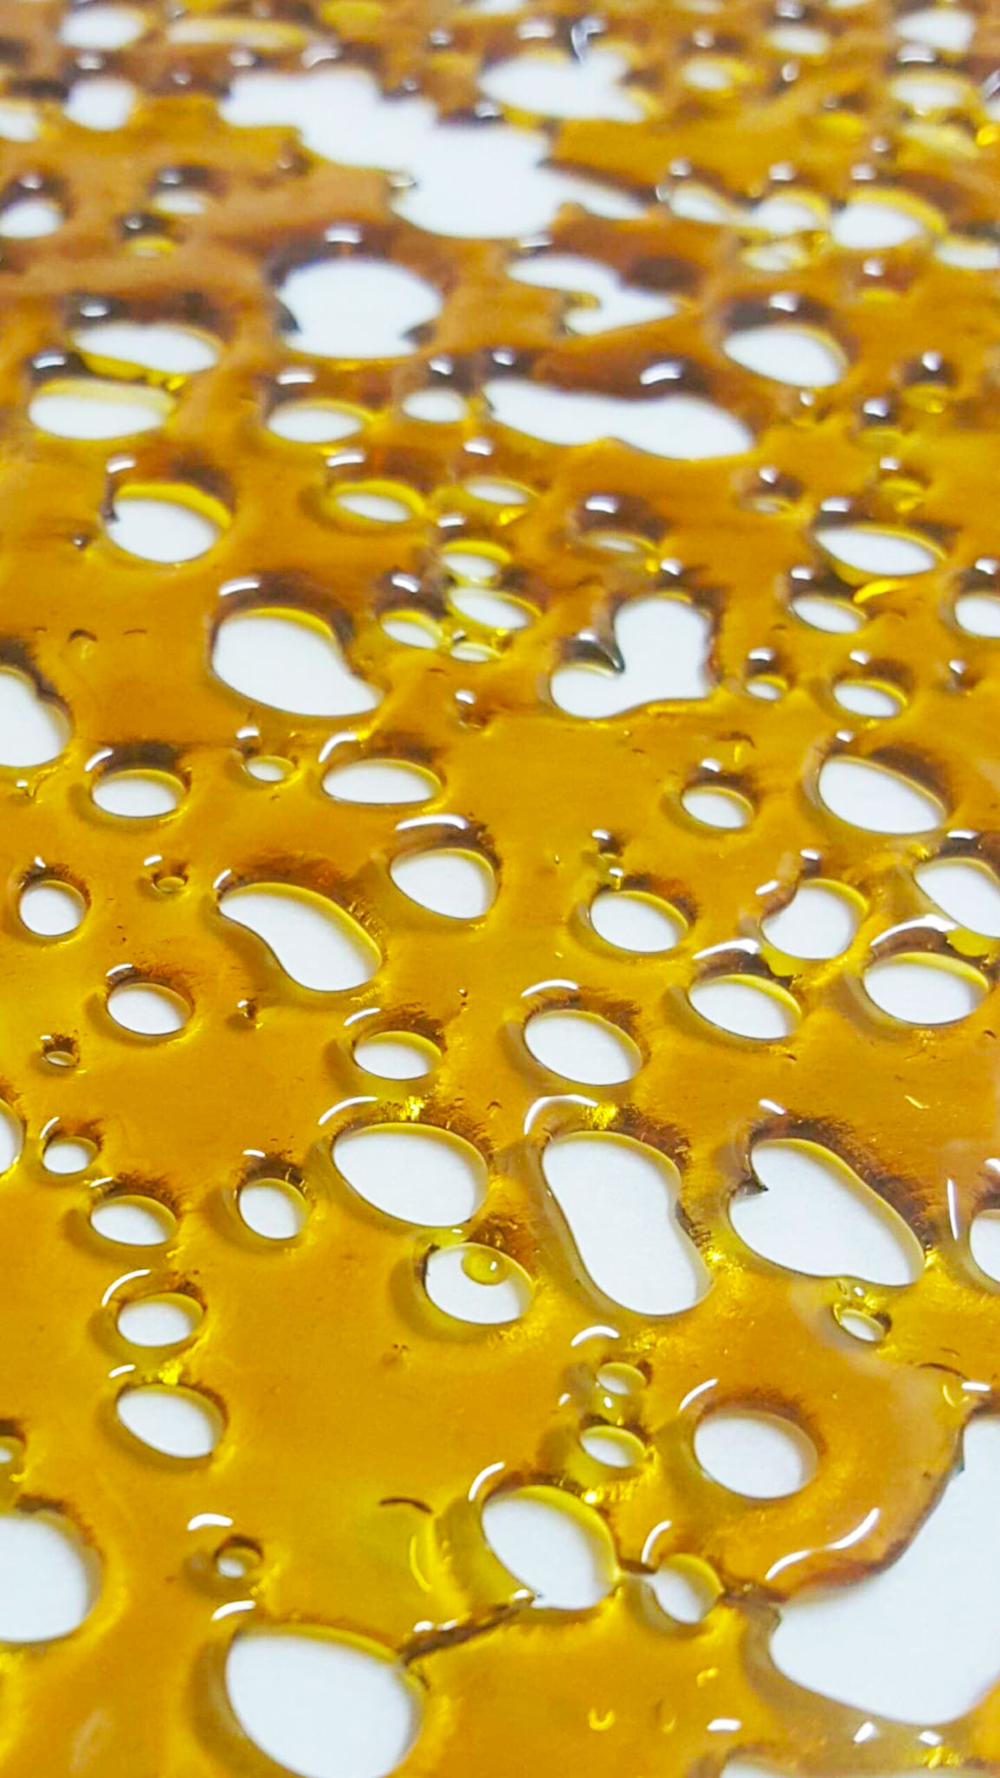 HONEY_GLASS_BHO_Shatter.png